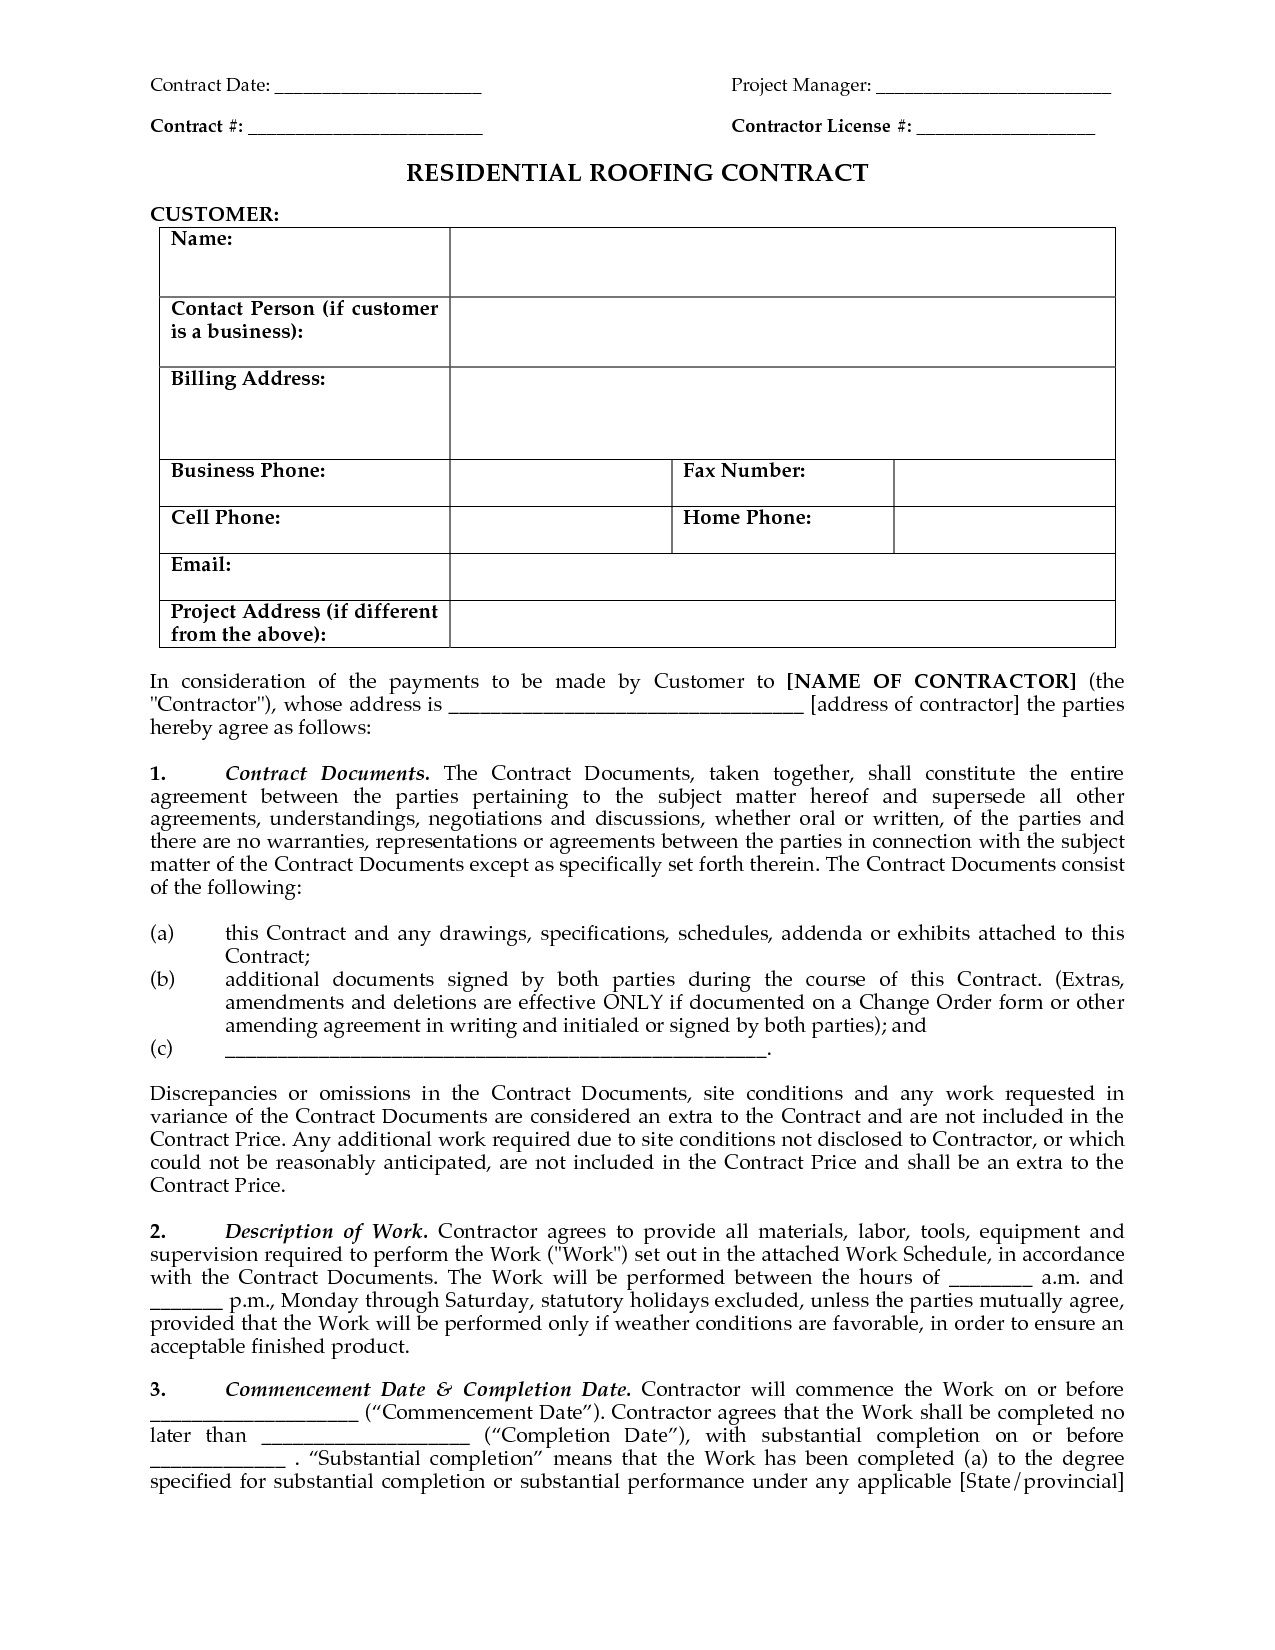 000 Rare Free Residential Roofing Contract Template Idea Full